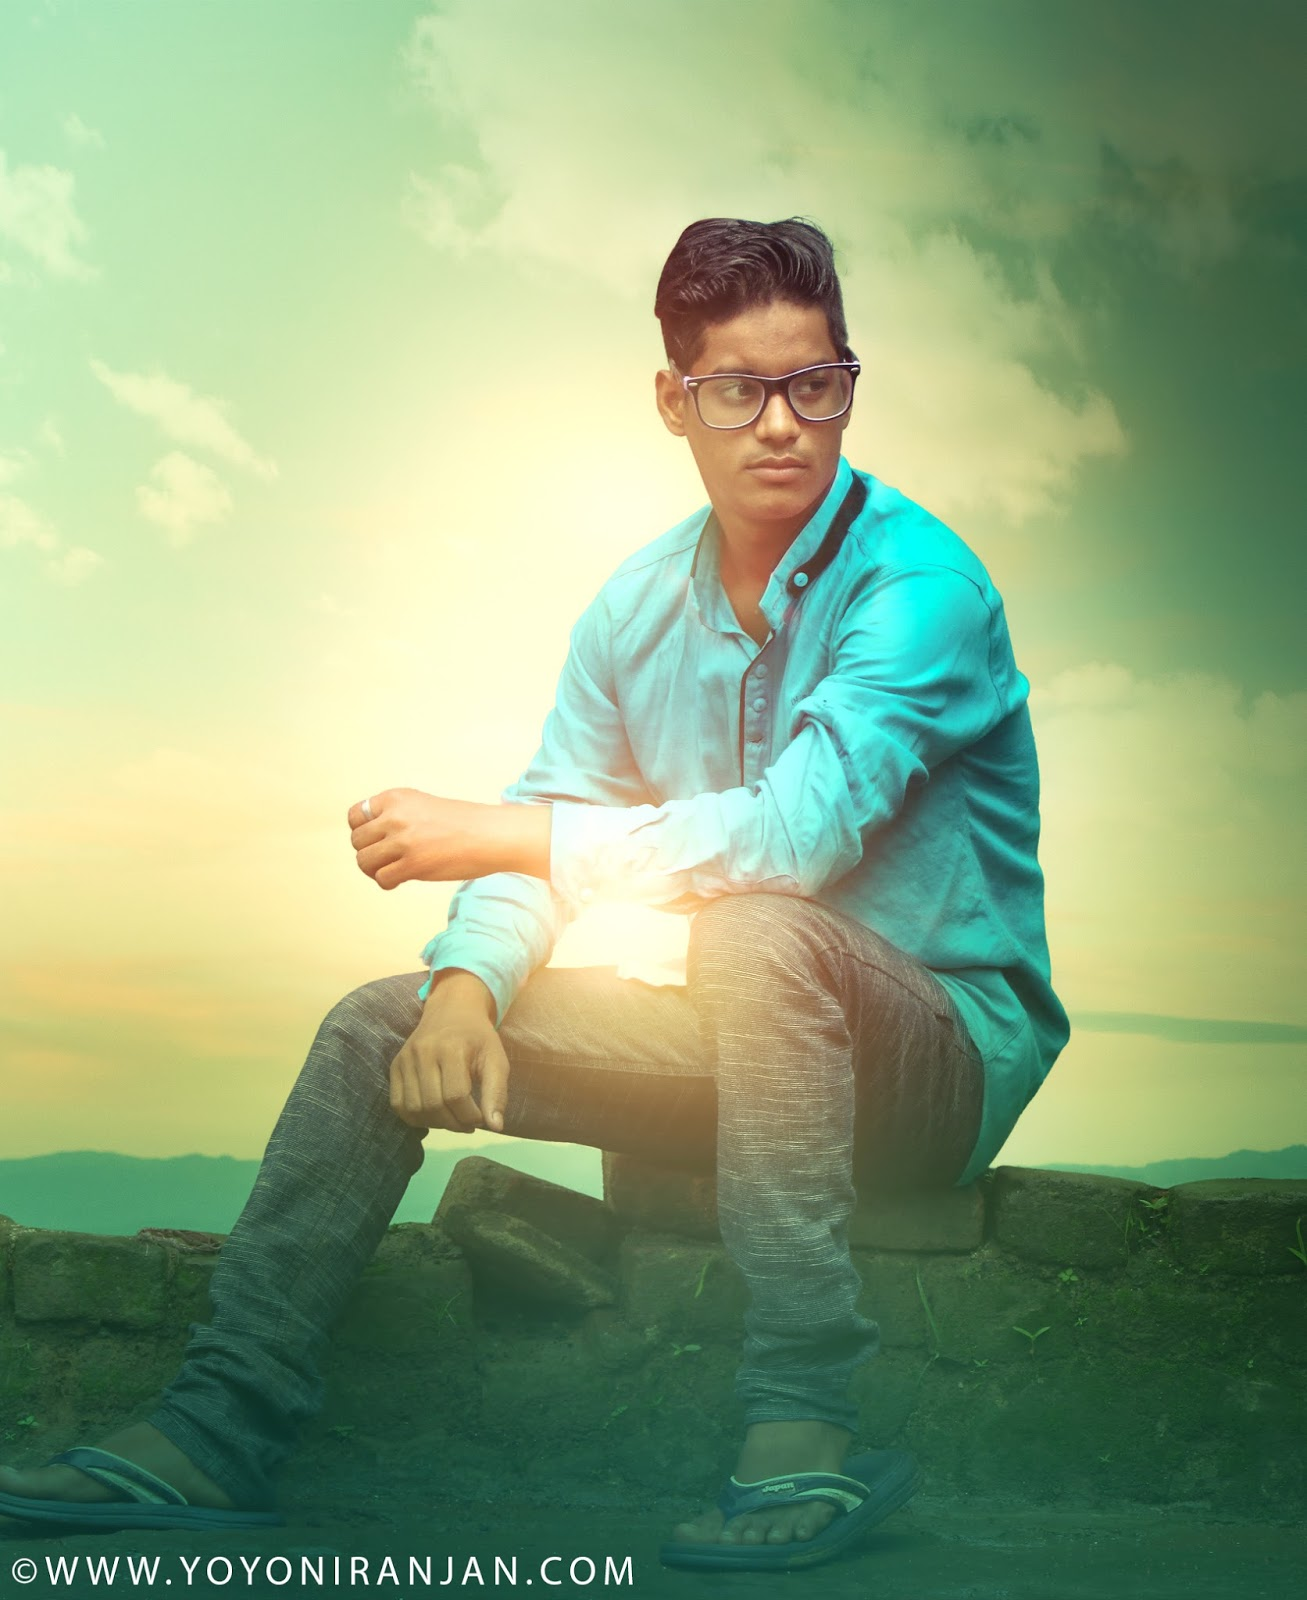 Photoshop cc tutorial fantasy look sun light editing tutorial photoshop cc tutorial fantasy look sun light editing tutorial baditri Images